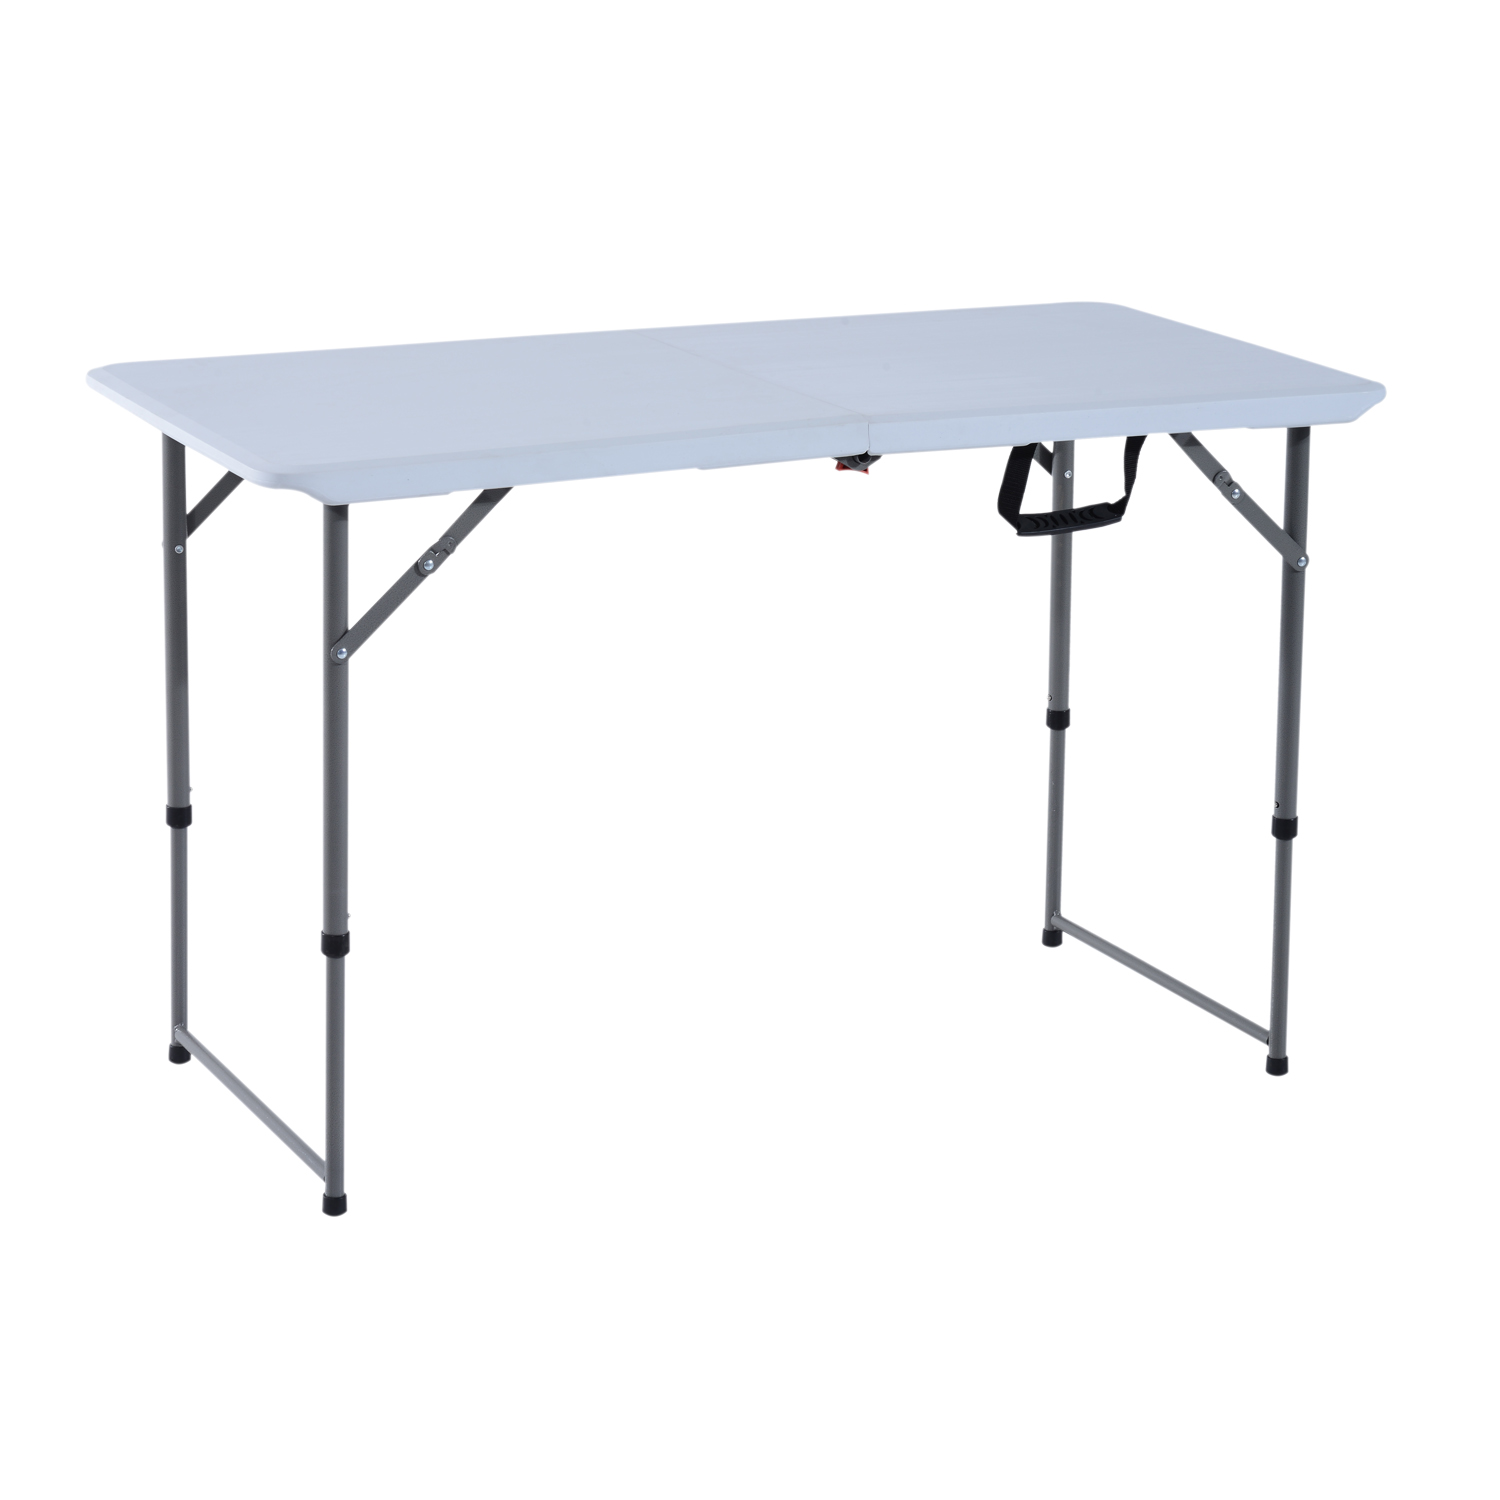 Image of £25.99 Outsunny 120Lx60Wx74H cm Folding Camping Table / 4ft 1.2m Outdoor Garden Party Picnic BBQ Trestle Field Kitchen Height Adjustable Steel 120x60cm 84B-133 5056029891070